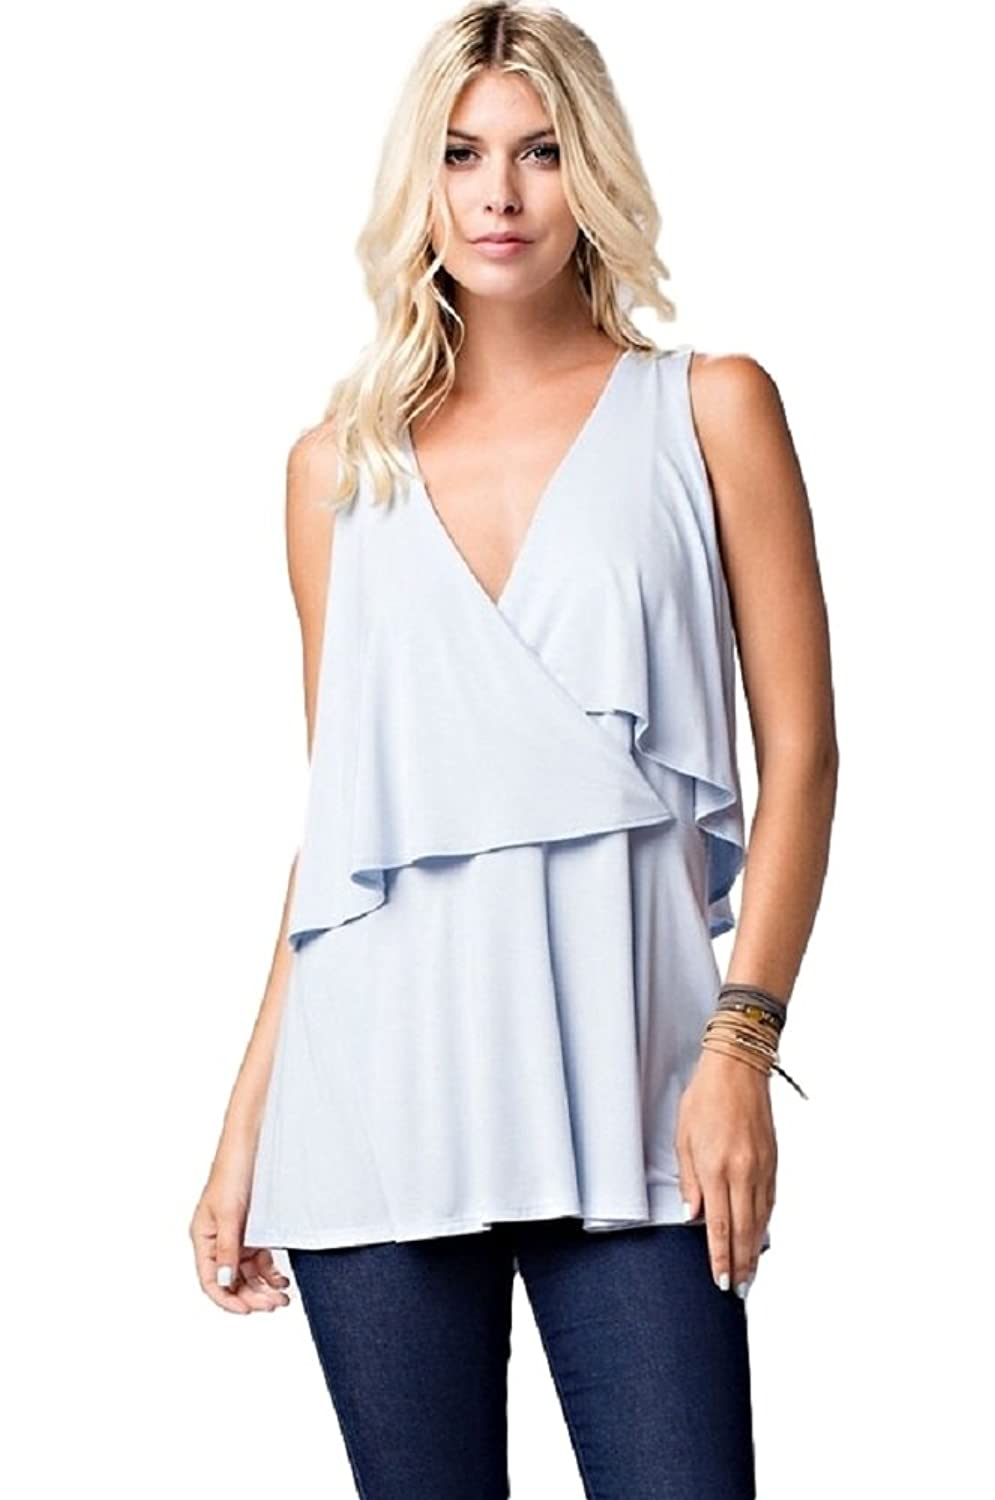 143 Story Baby Blue V Neck Layered Tank Top Button Back Unique